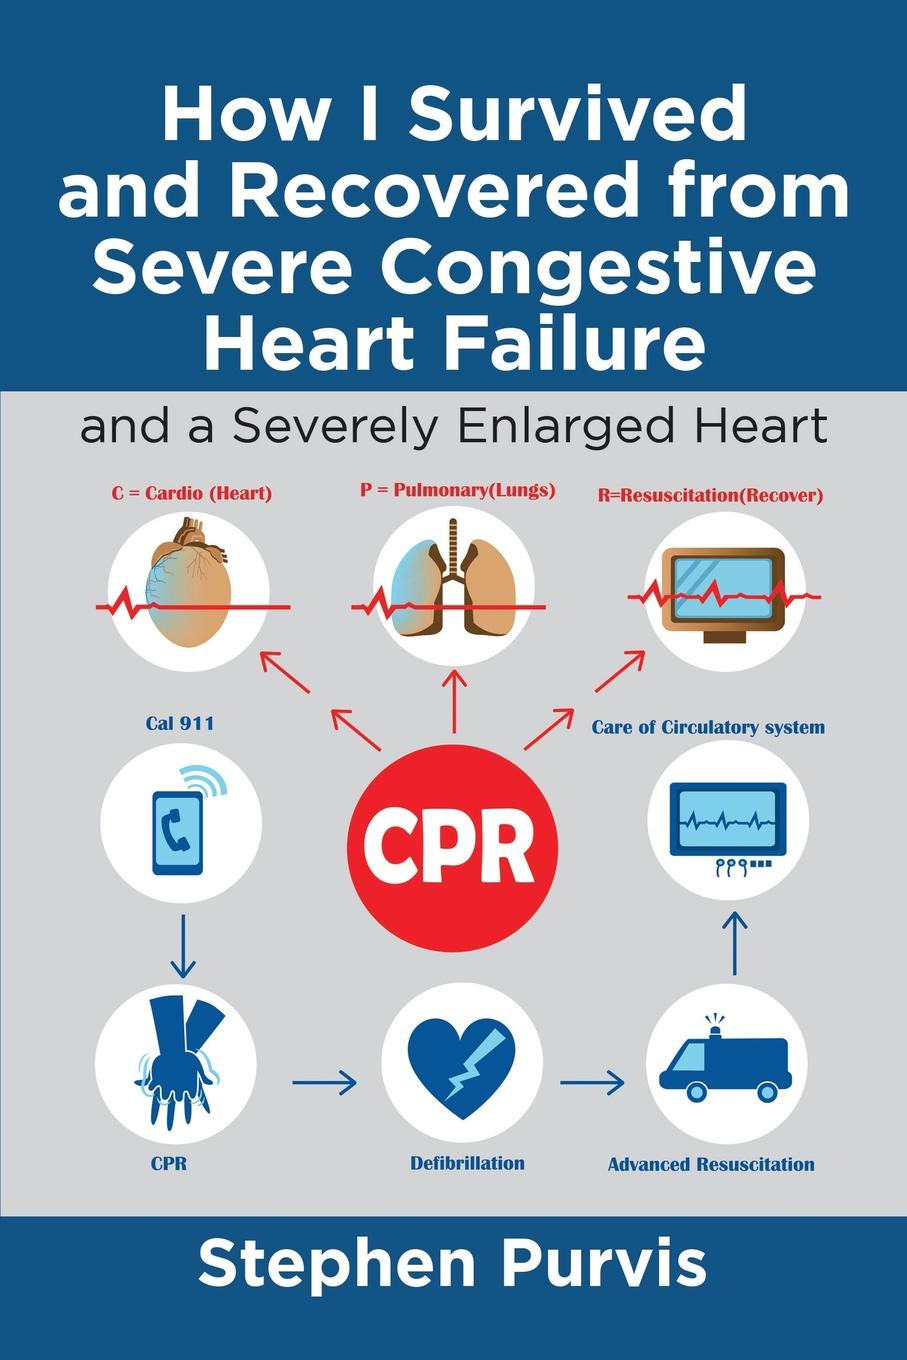 Stephen Purvis How I Survived and Recovered from Severe Congestive Heart Failure. And a Severely Enlarged Heart outcomes in heart failure